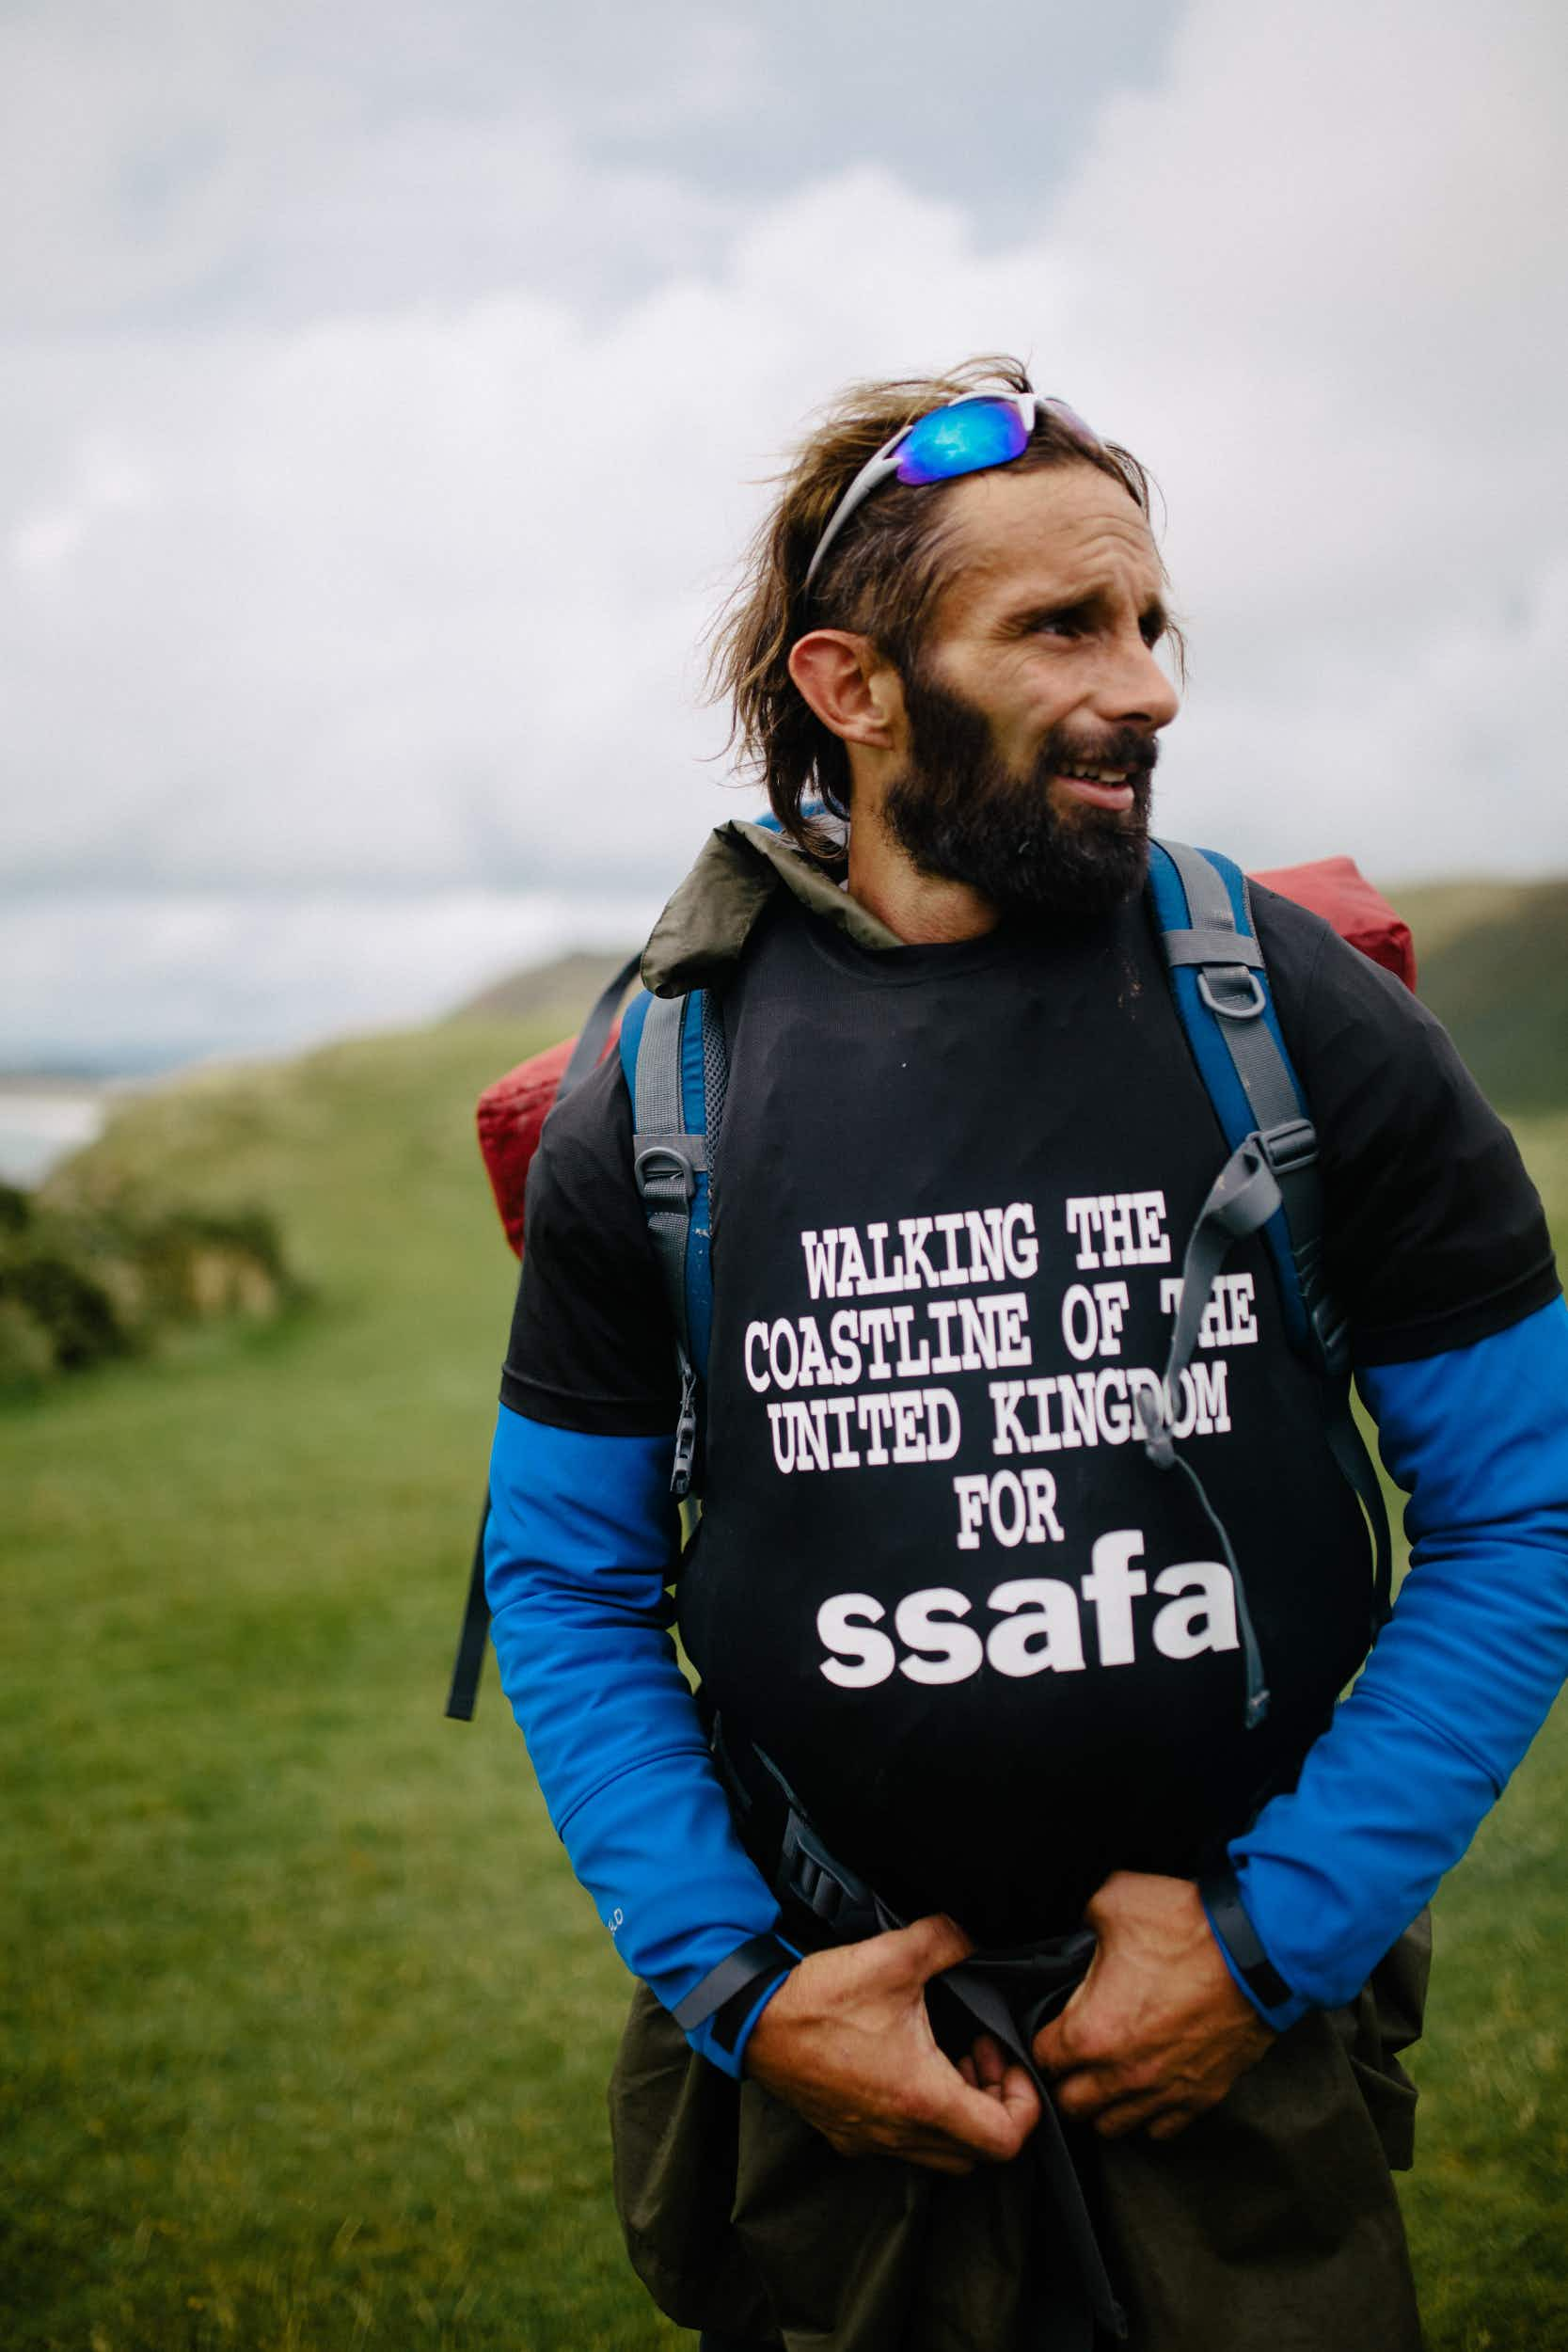 This army veteran is walking the entire coastline of the UK for charity